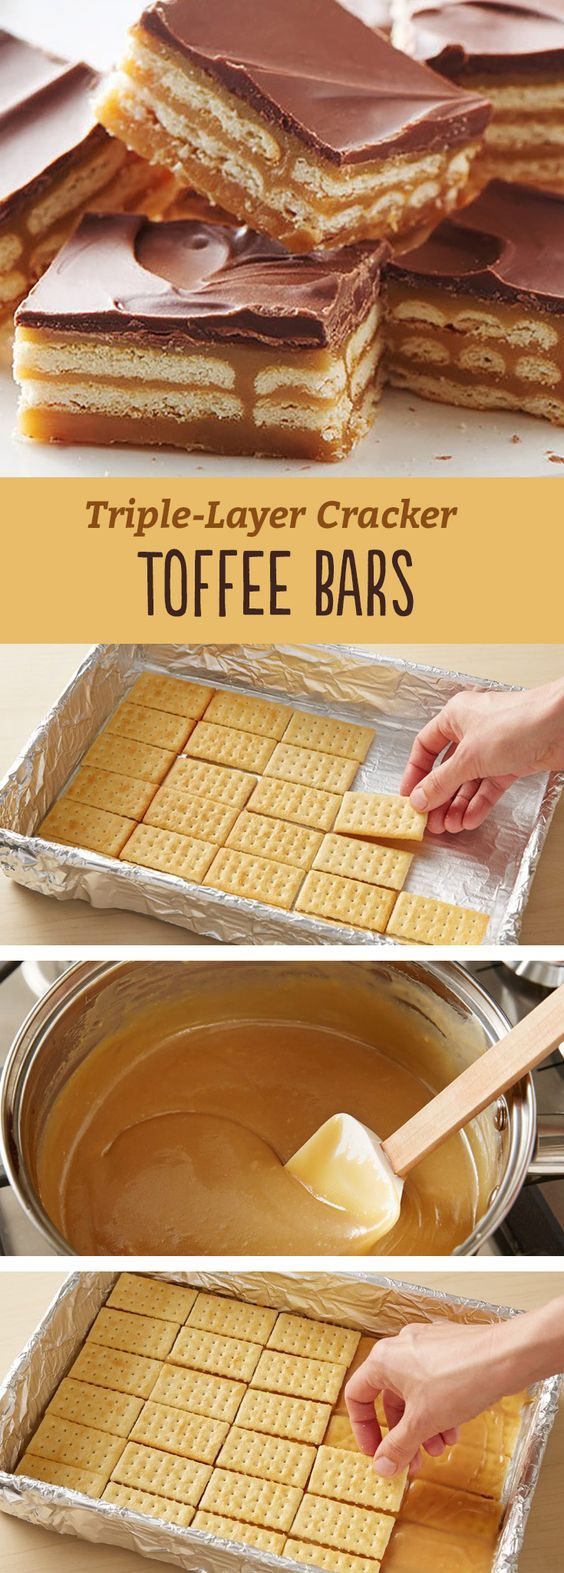 Triple-Layer Cracker Toffee Bars These easy caramel and chocolate layered cracker toffee bars are a twist on a traditional cracker toffee.